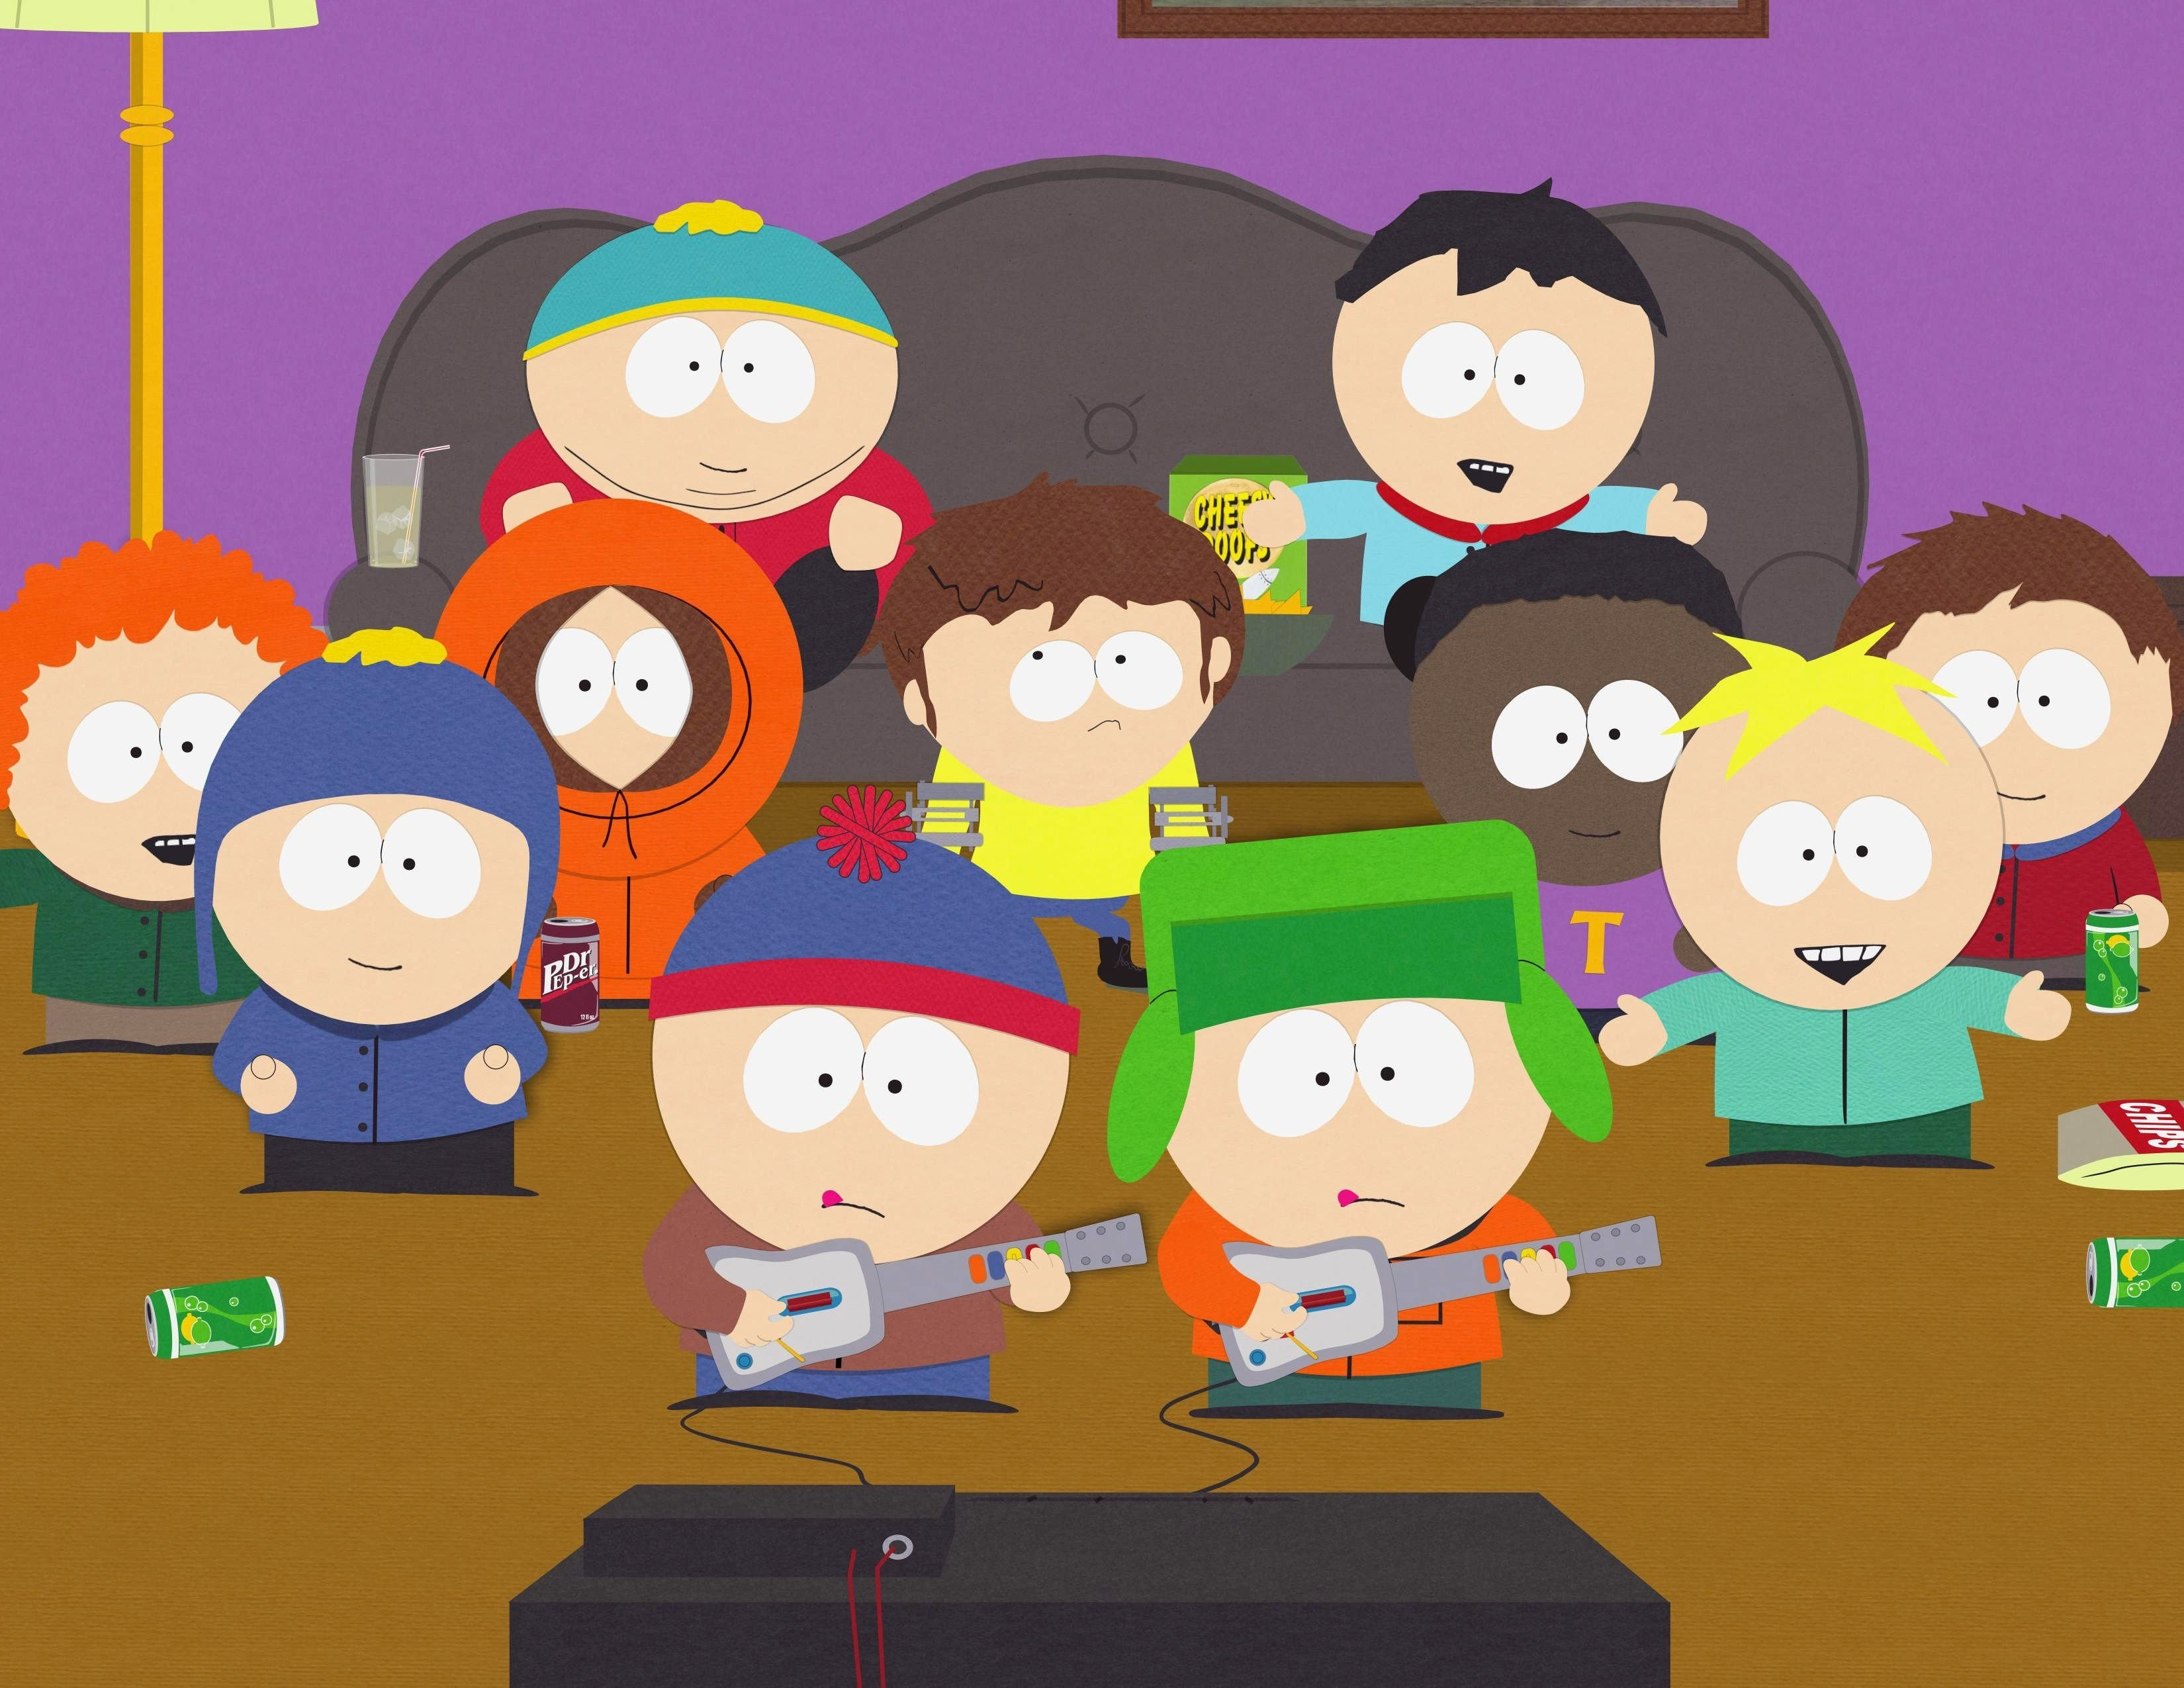 10 Ideal Towelie I Have No Idea south park butters wallpaper hd wallpapers pinterest south